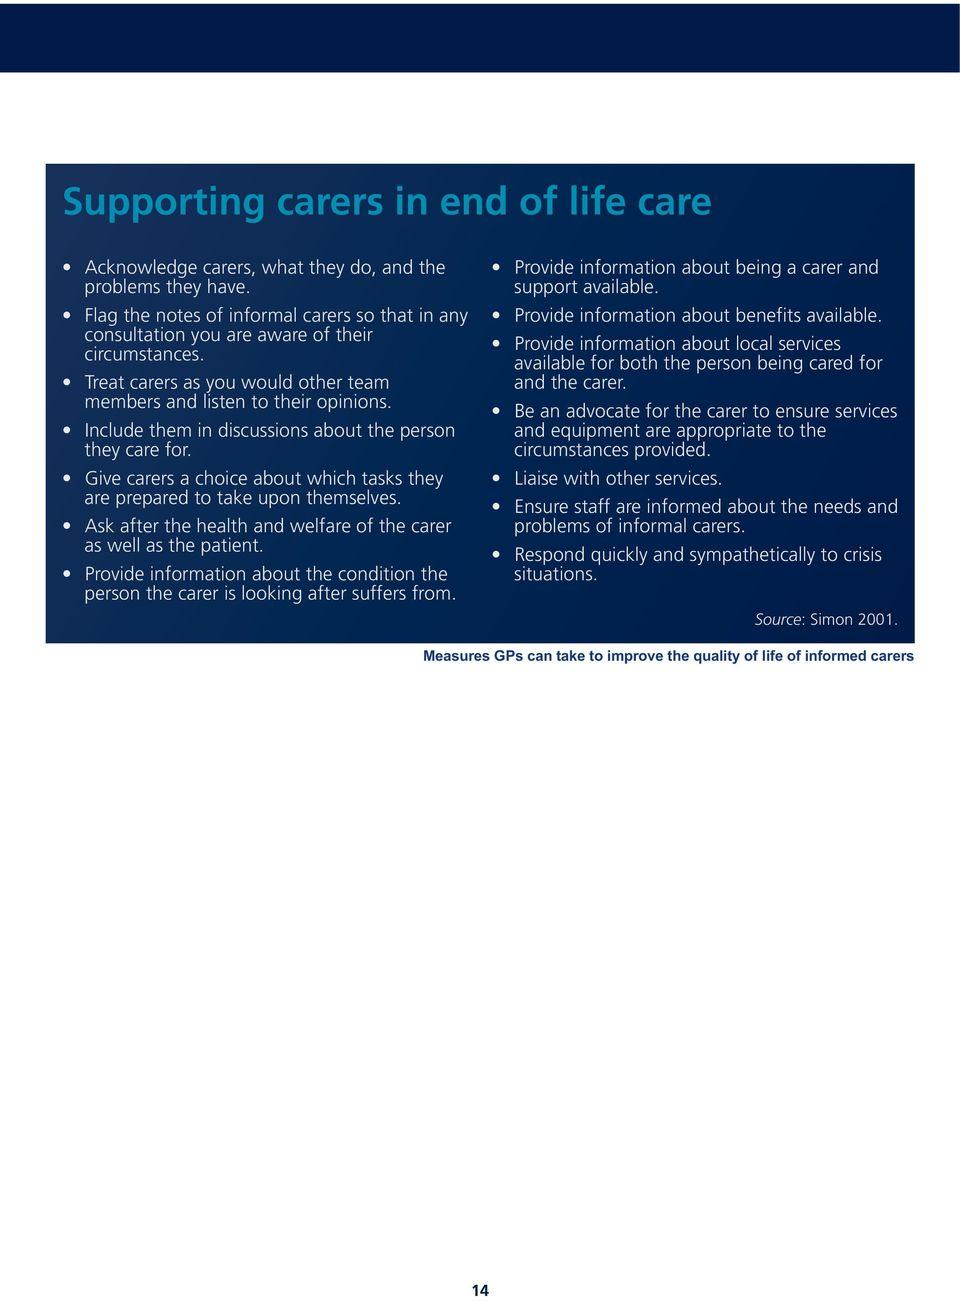 Give carers a choice about which tasks they are prepared to take upon themselves. Ask after the health and welfare of the carer as well as the patient.